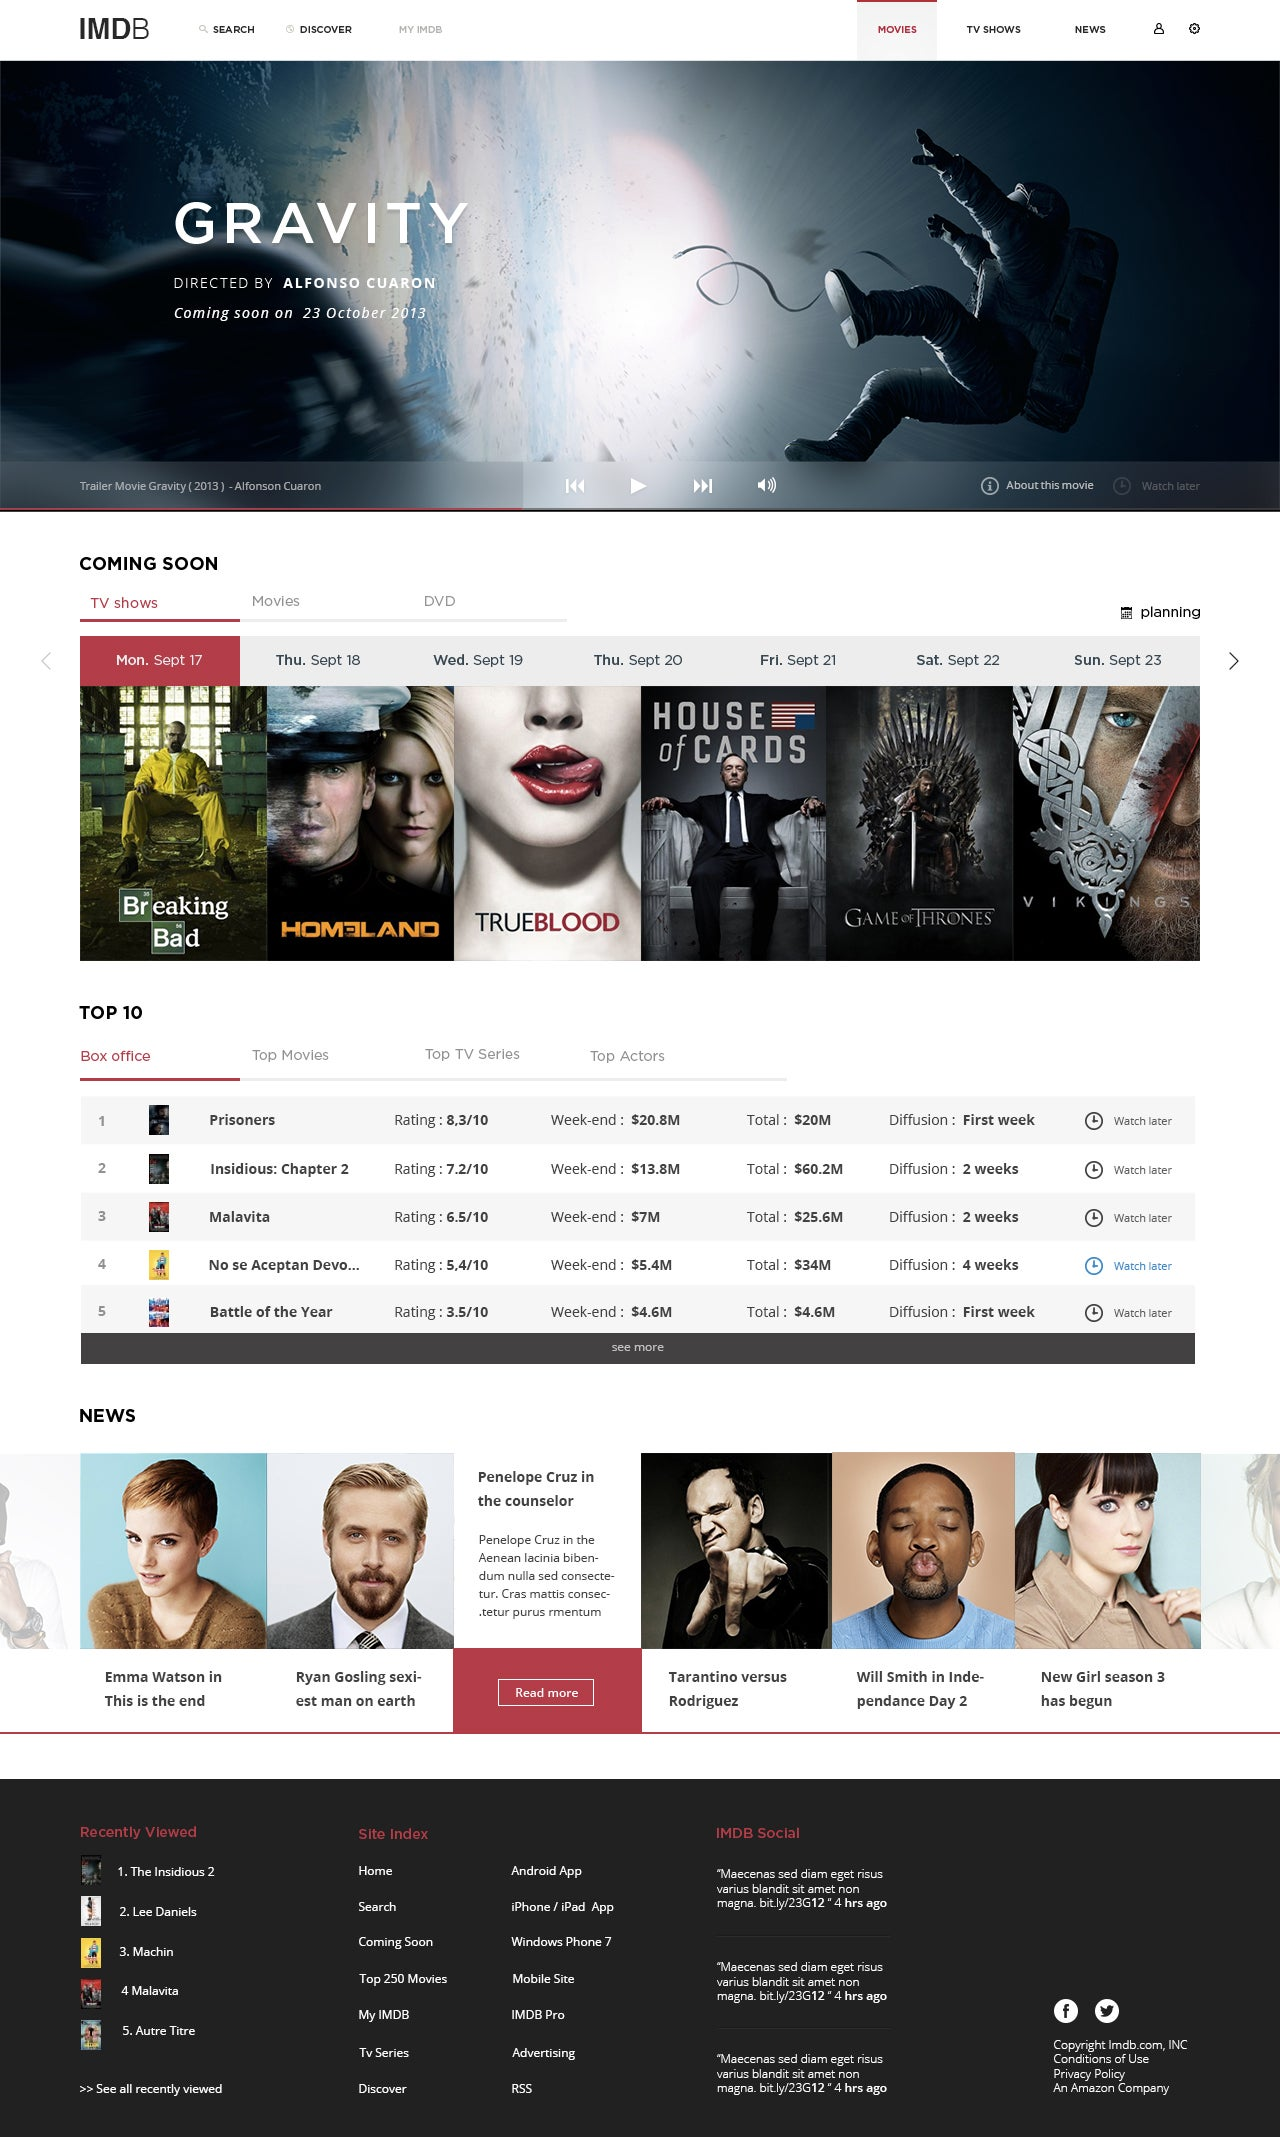 This Beautiful IMDb Redesign Concept Is Long Overdue